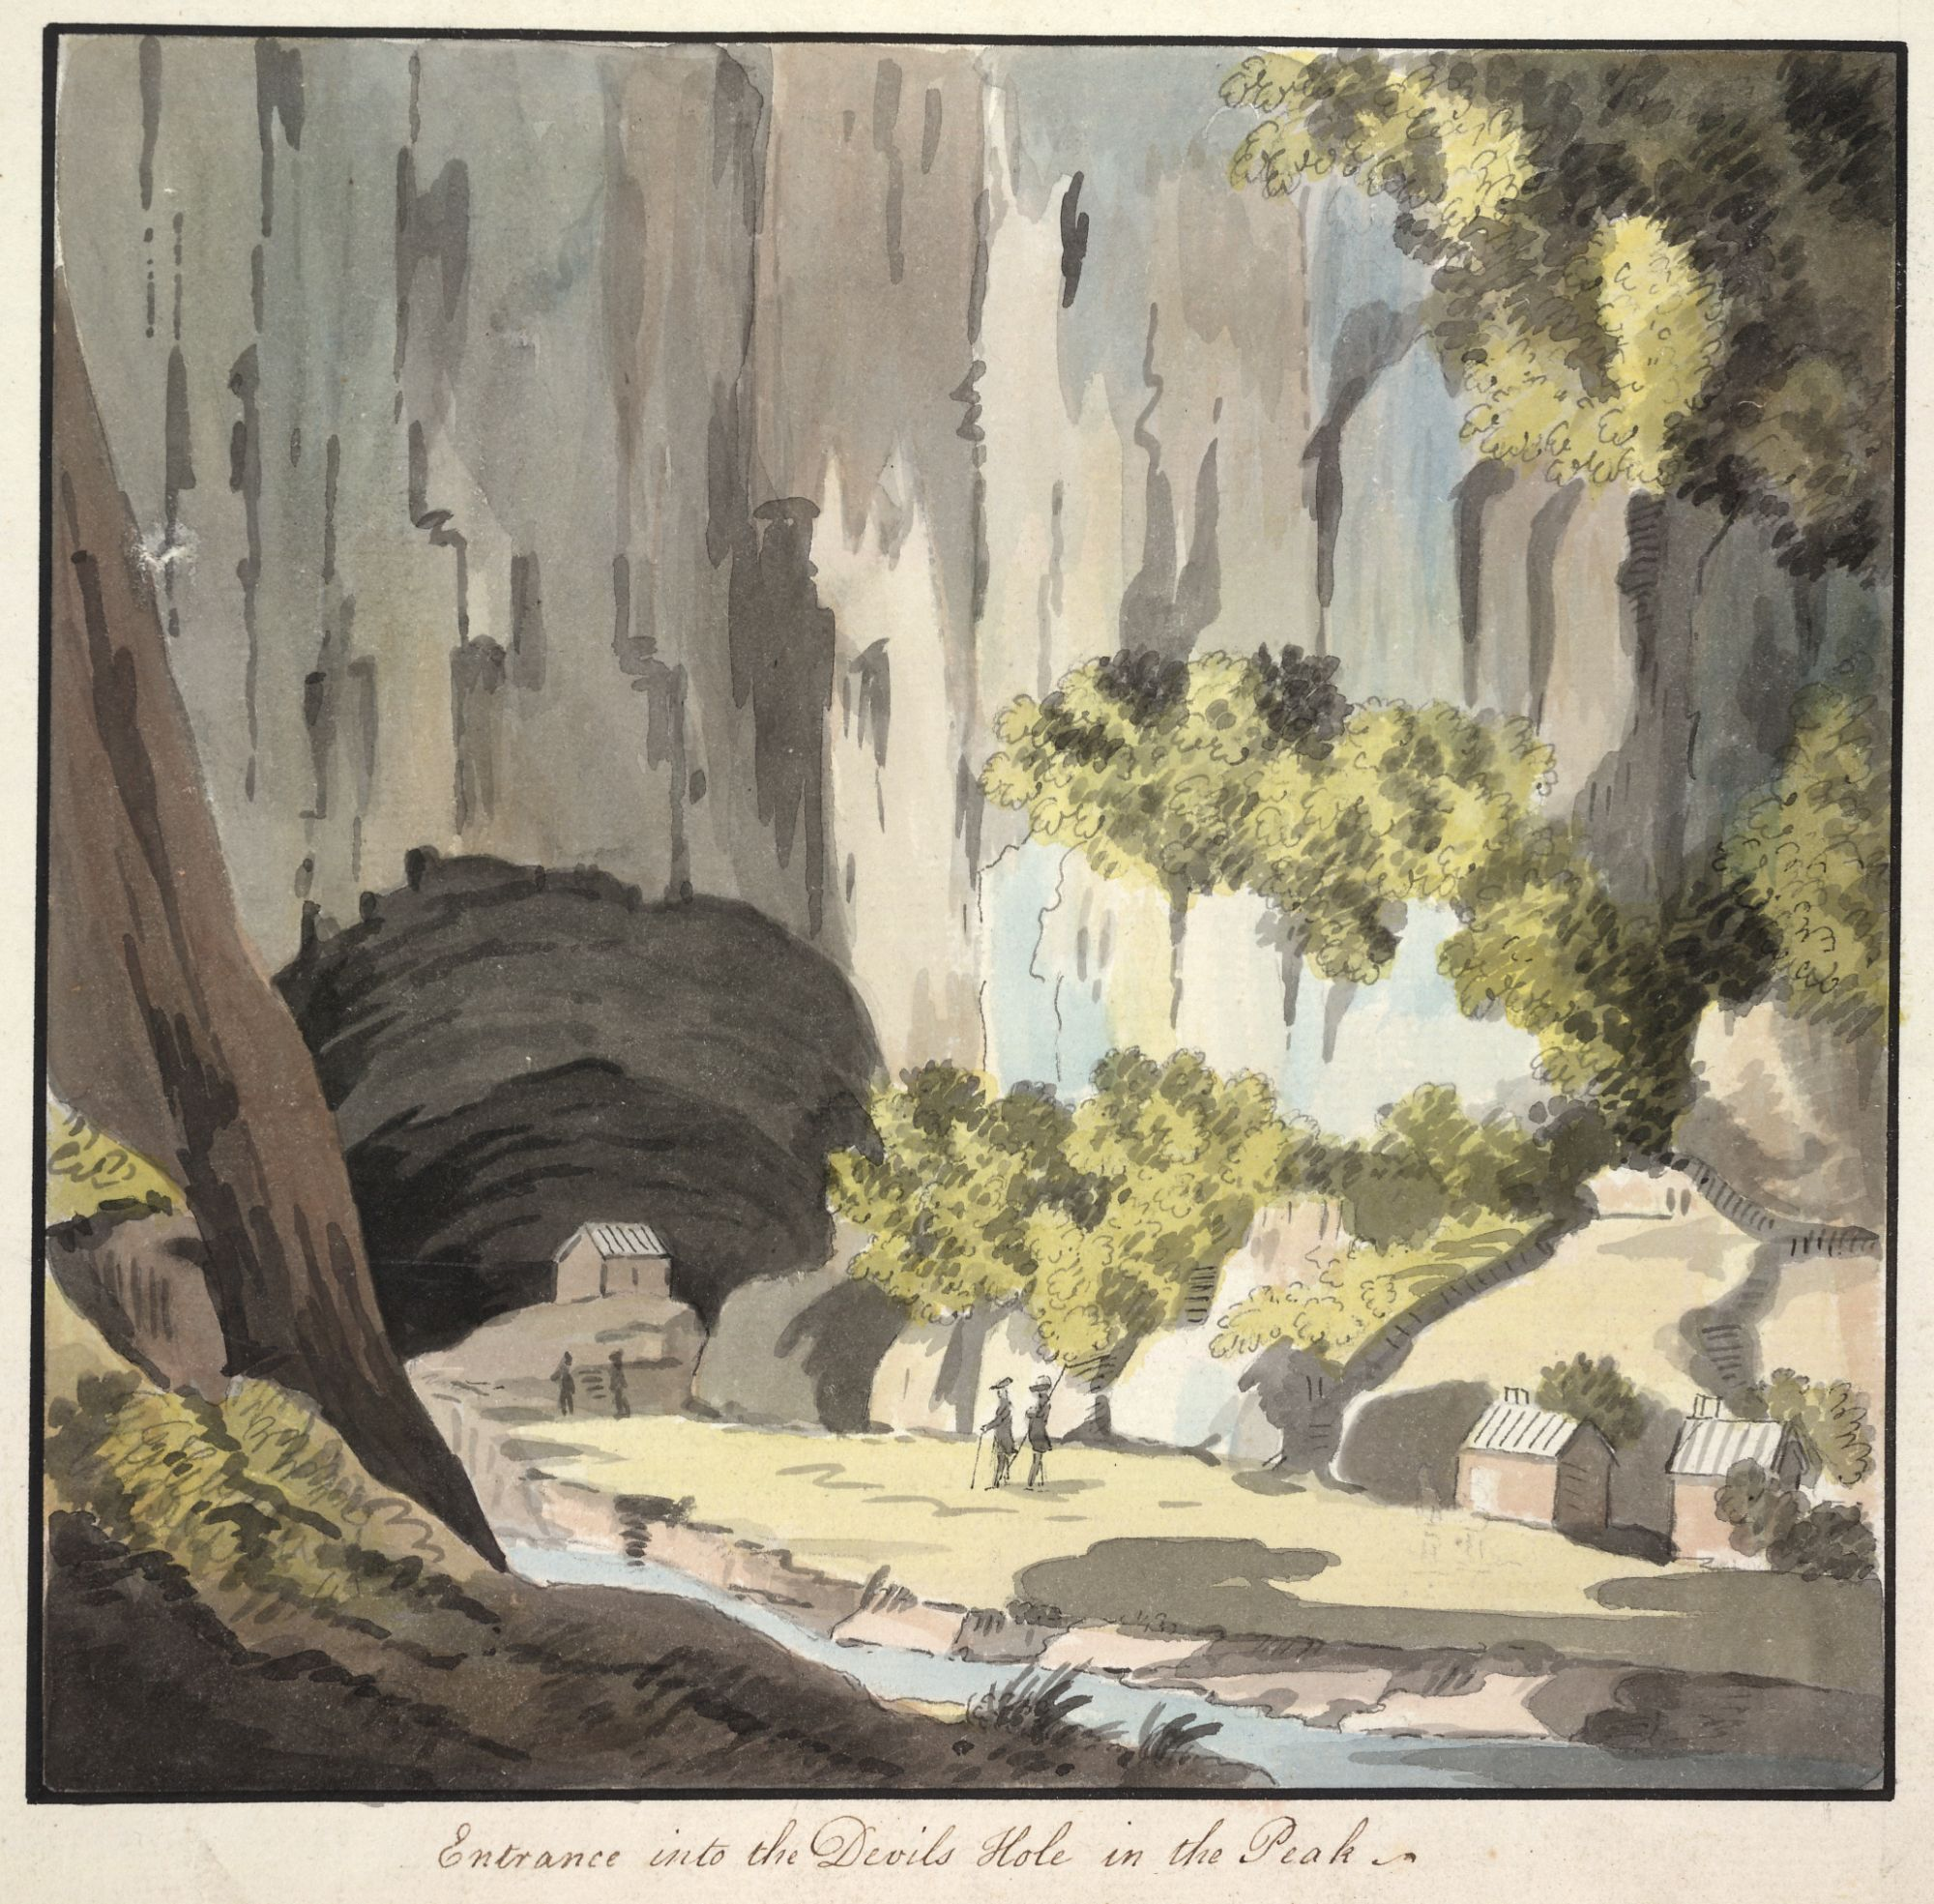 A view of the entrance into the Devils Hole in the Peak District, attributed to Theodosius Forrest.